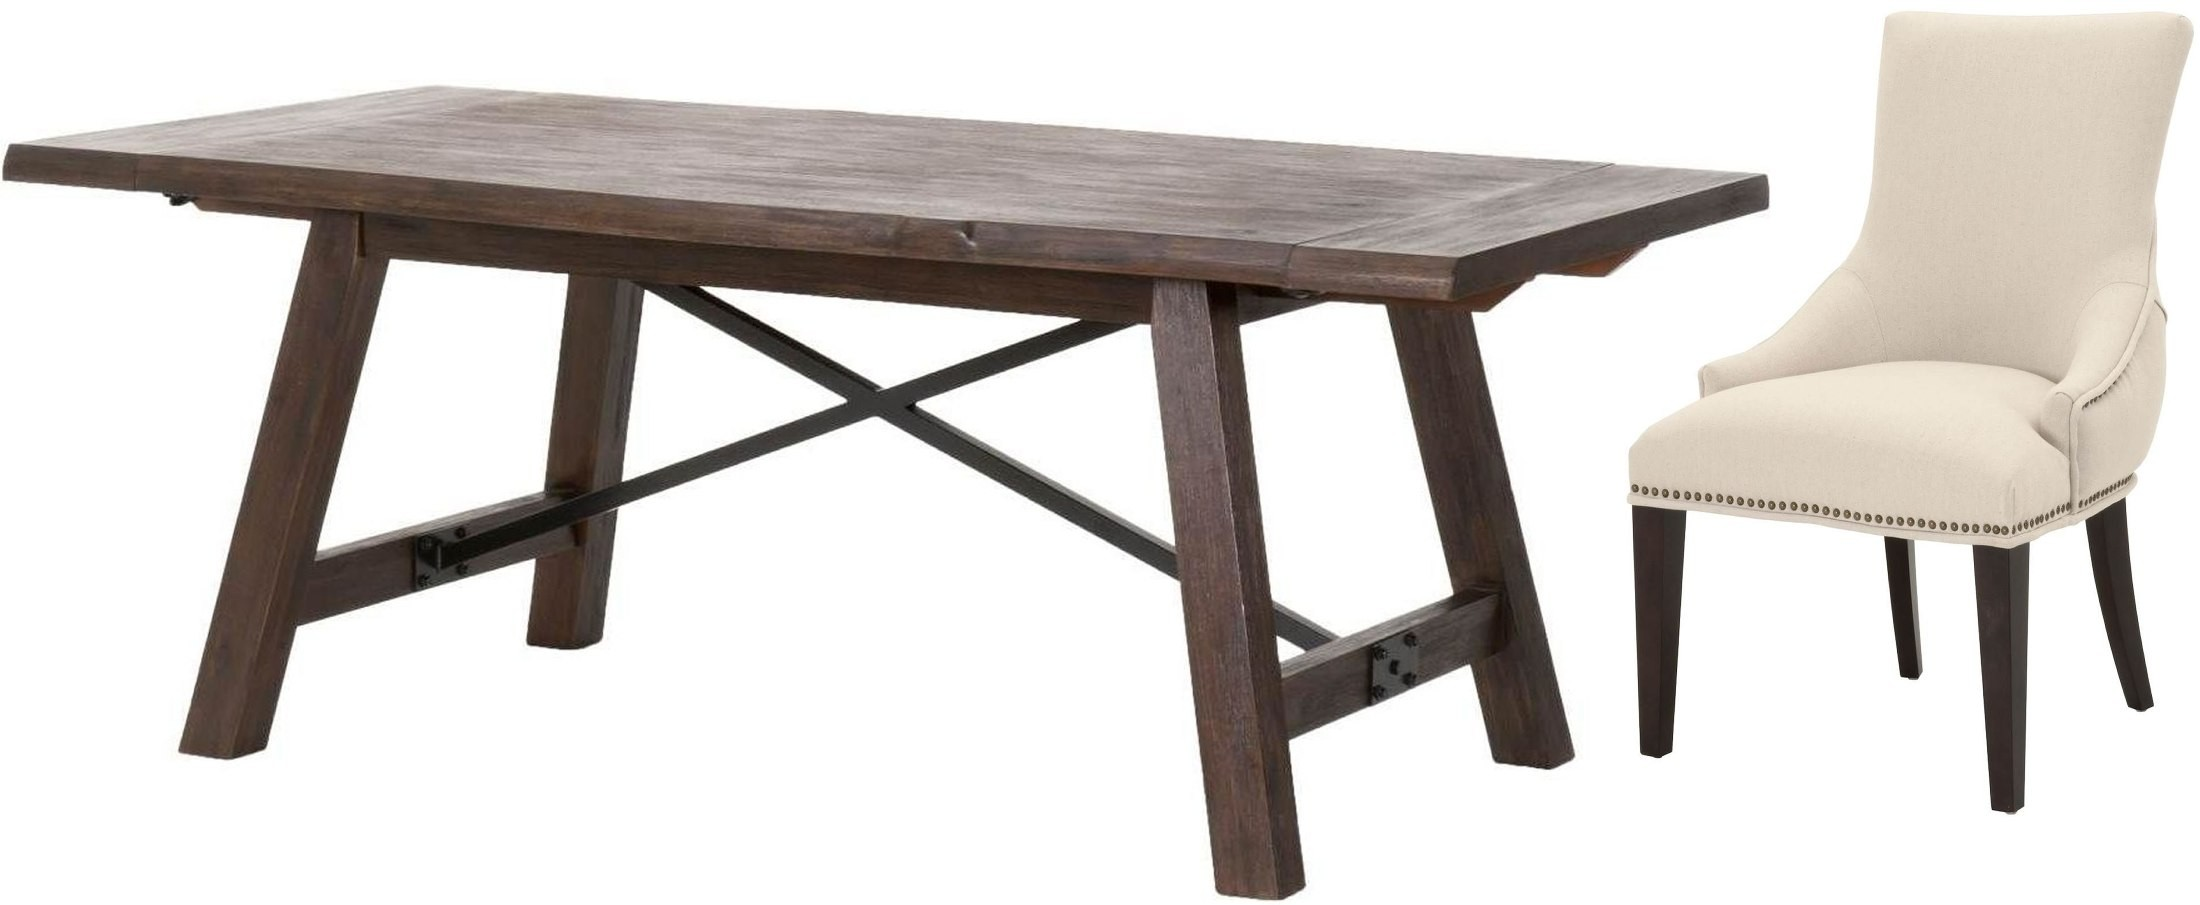 nixon rustic java extendable dining table from orient